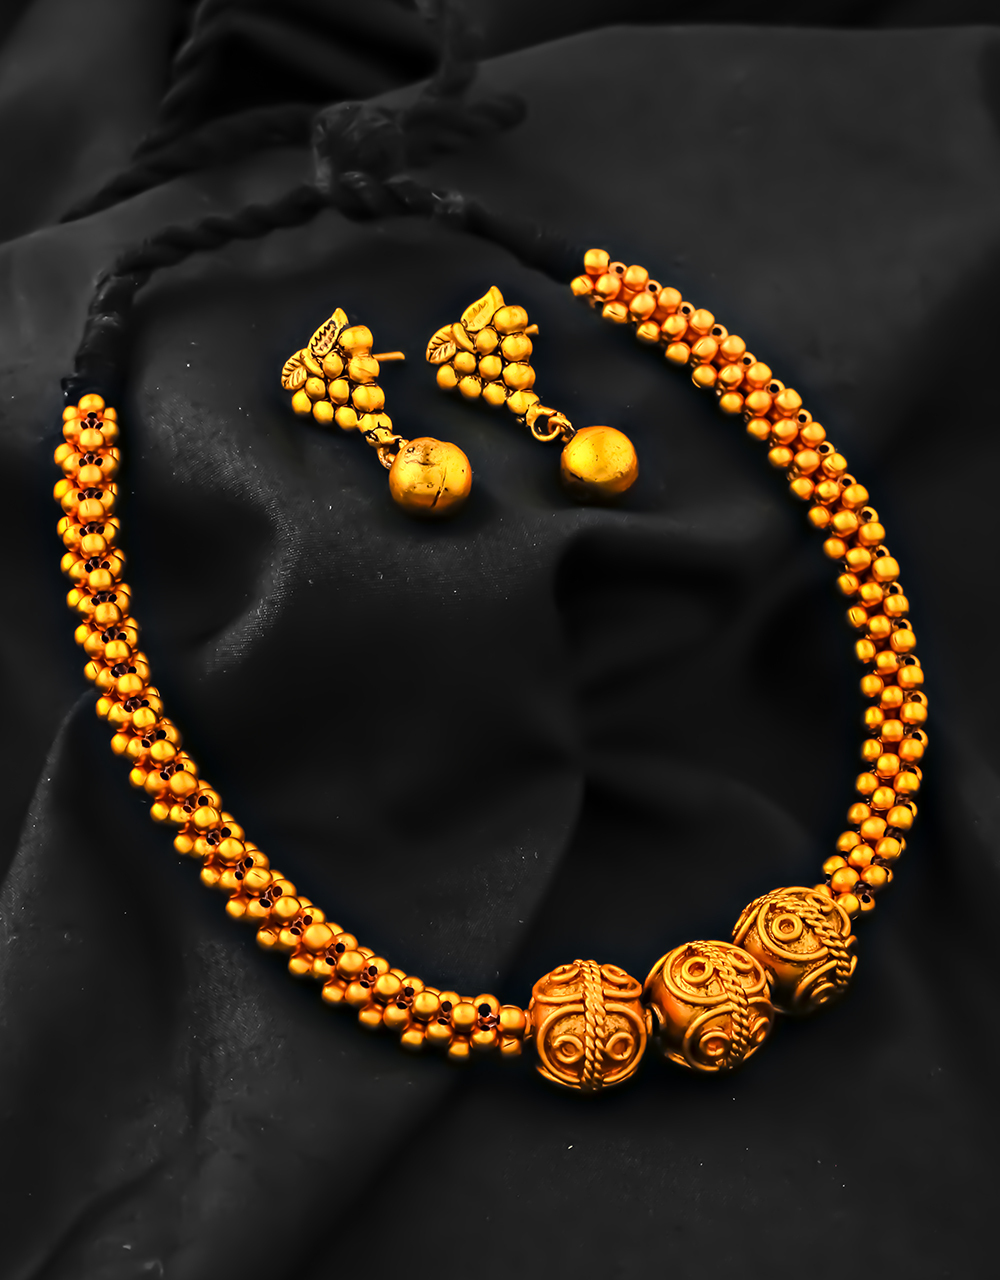 Matte Gold Finished Designer Thushi Necklace for Women Woven into Black Thread